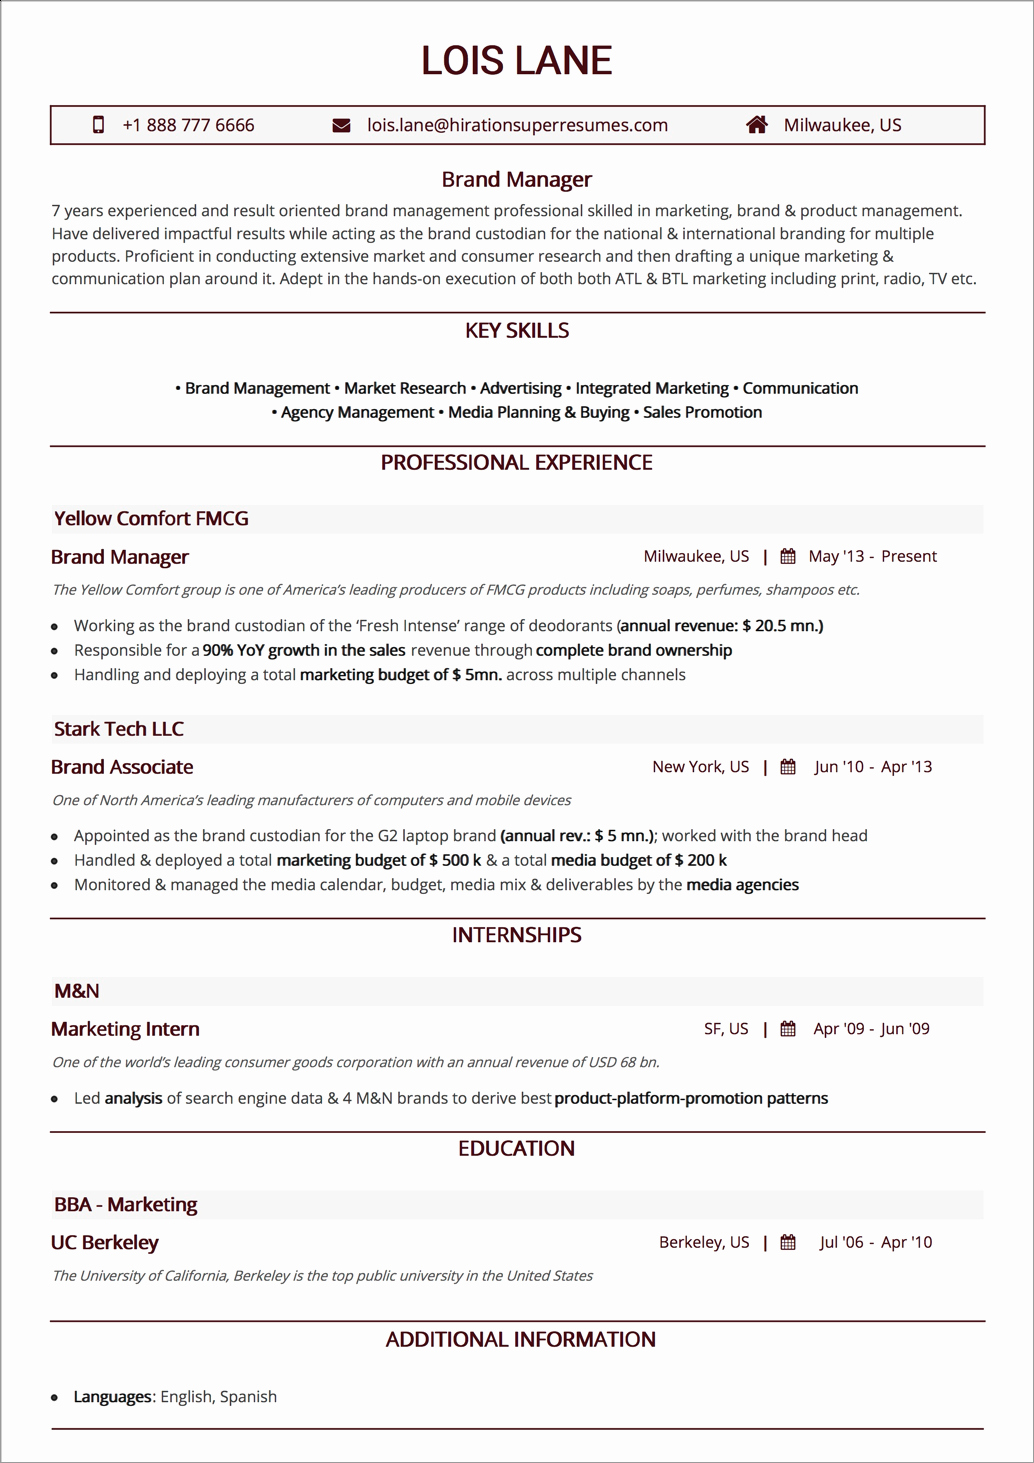 Best Resume Layout 2019 Guide with 50 Examples and Samples